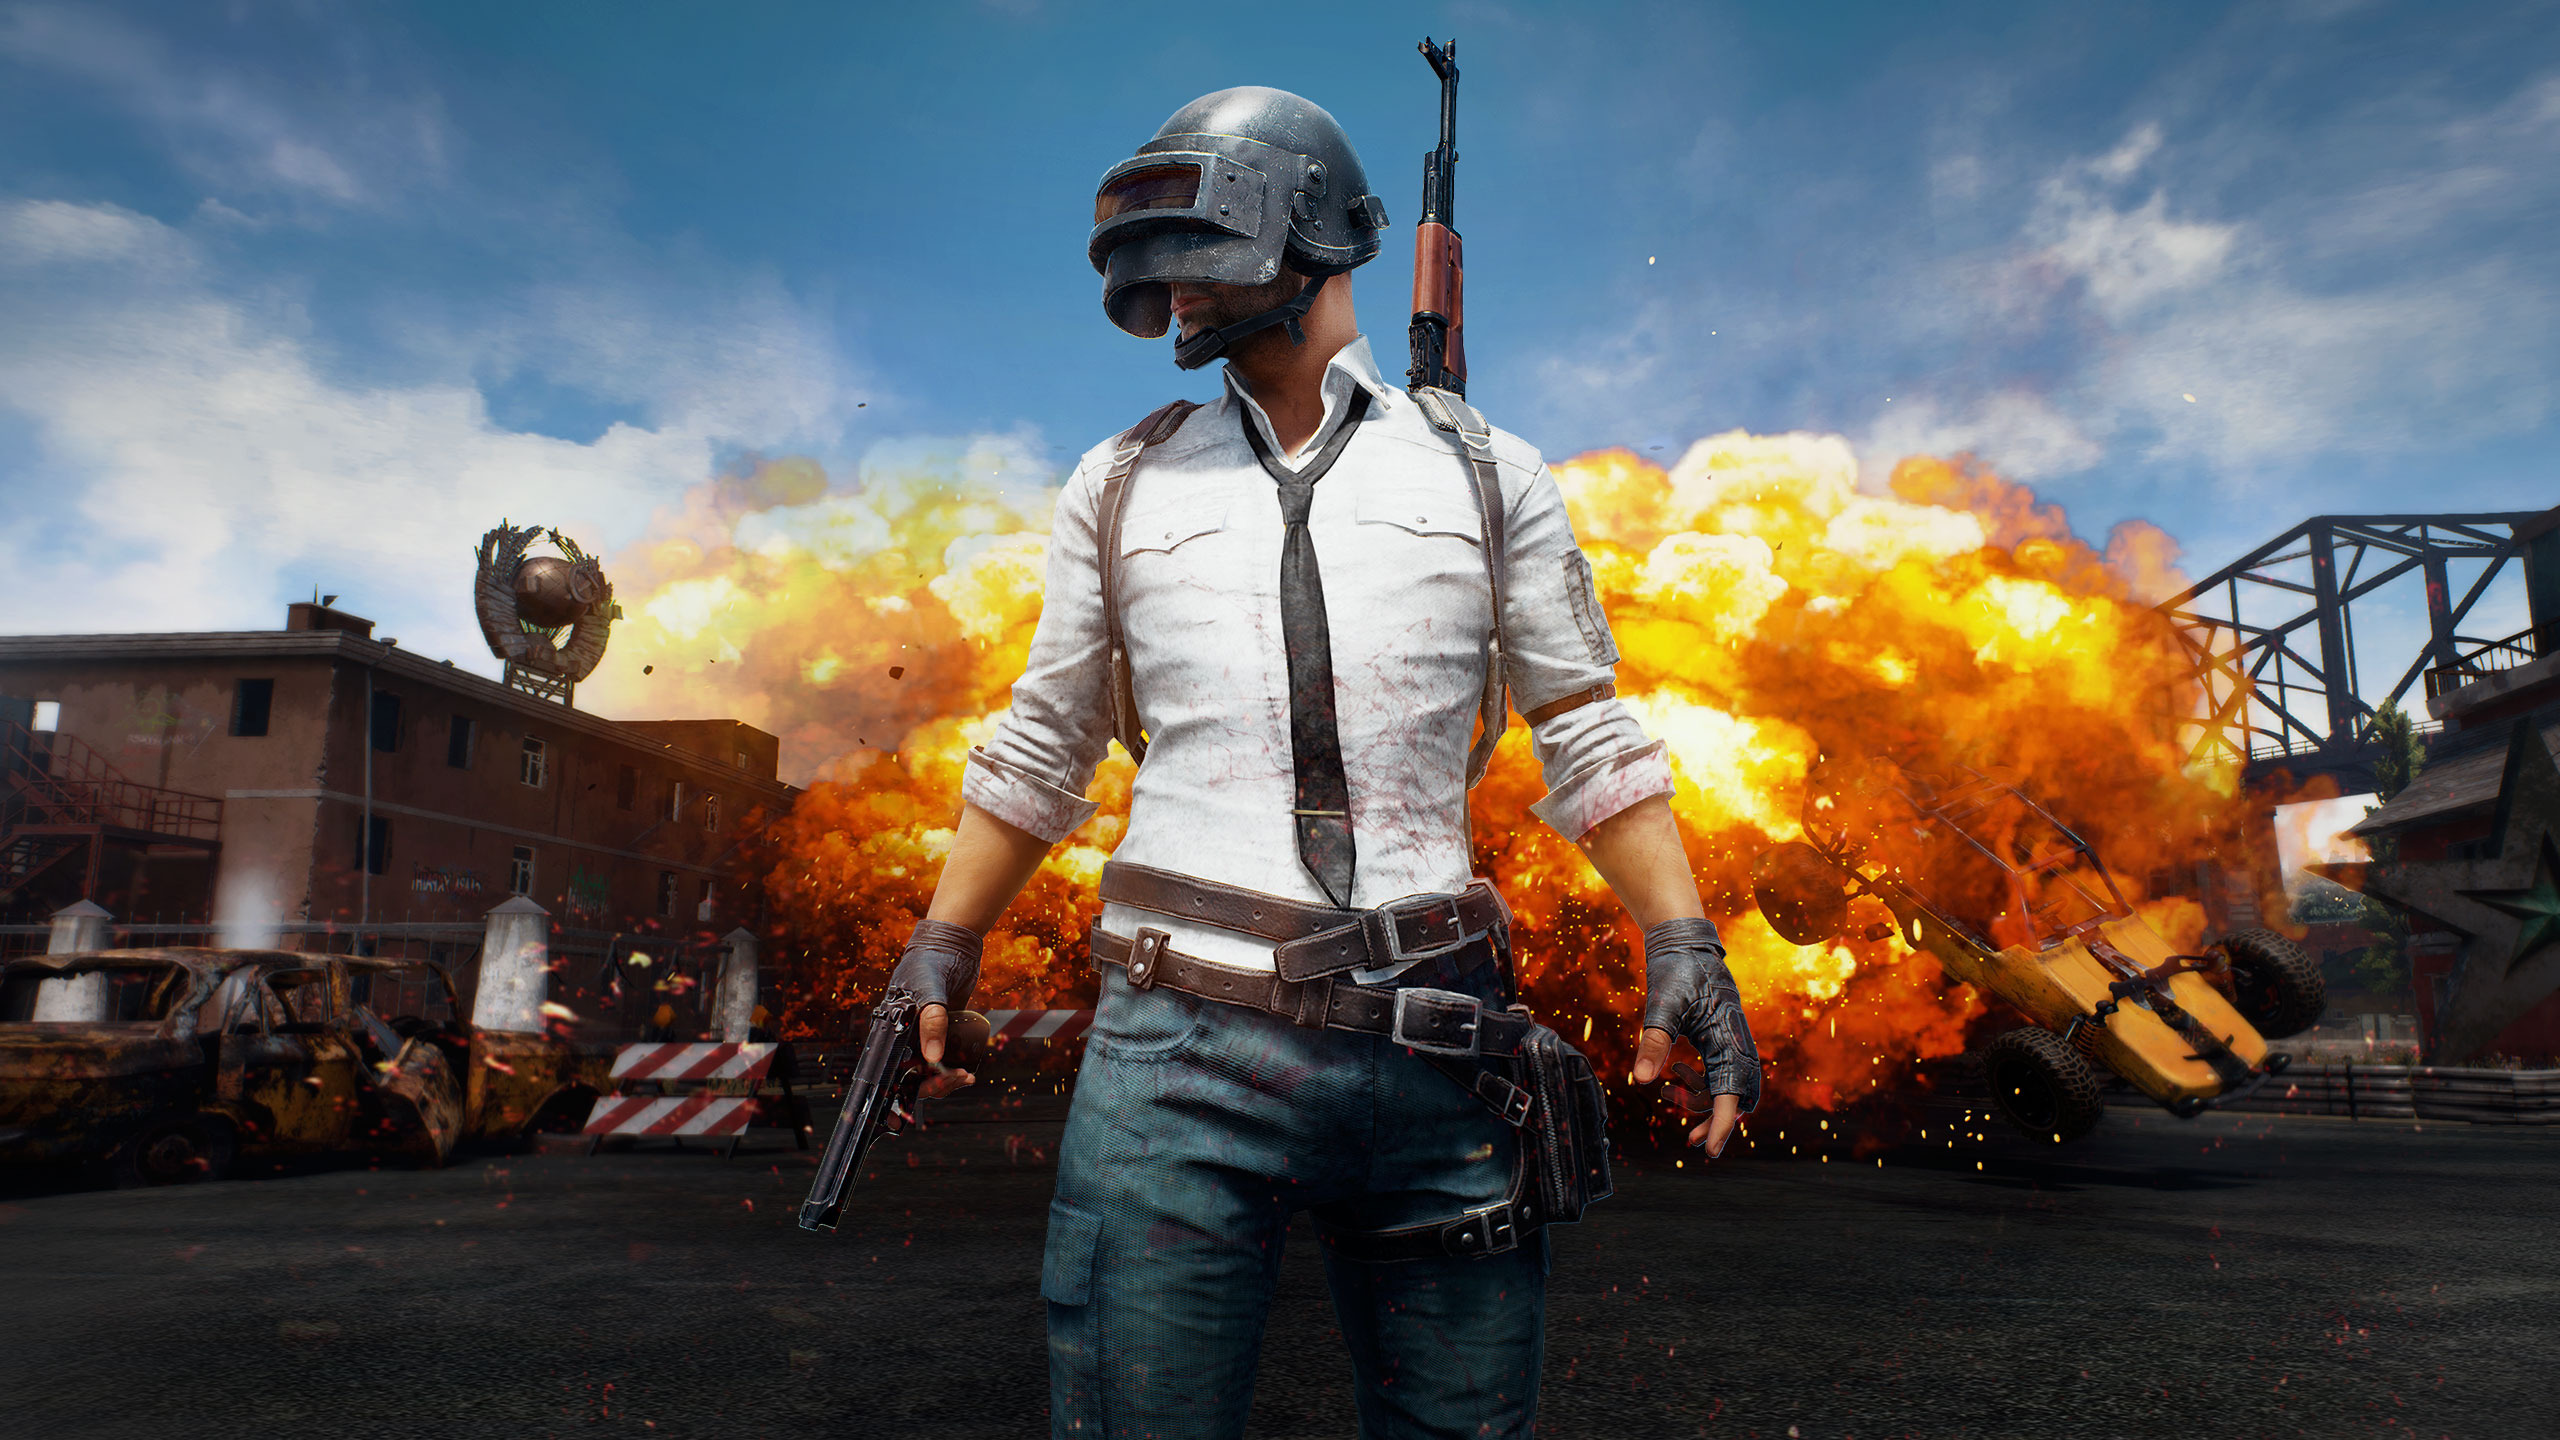 Pubg Playerunknowns Battlegrounds 4k Wallpapers: PLAYERUNKNOWN'S BATTLEGROUNDS Wallpapers, Pictures, Images